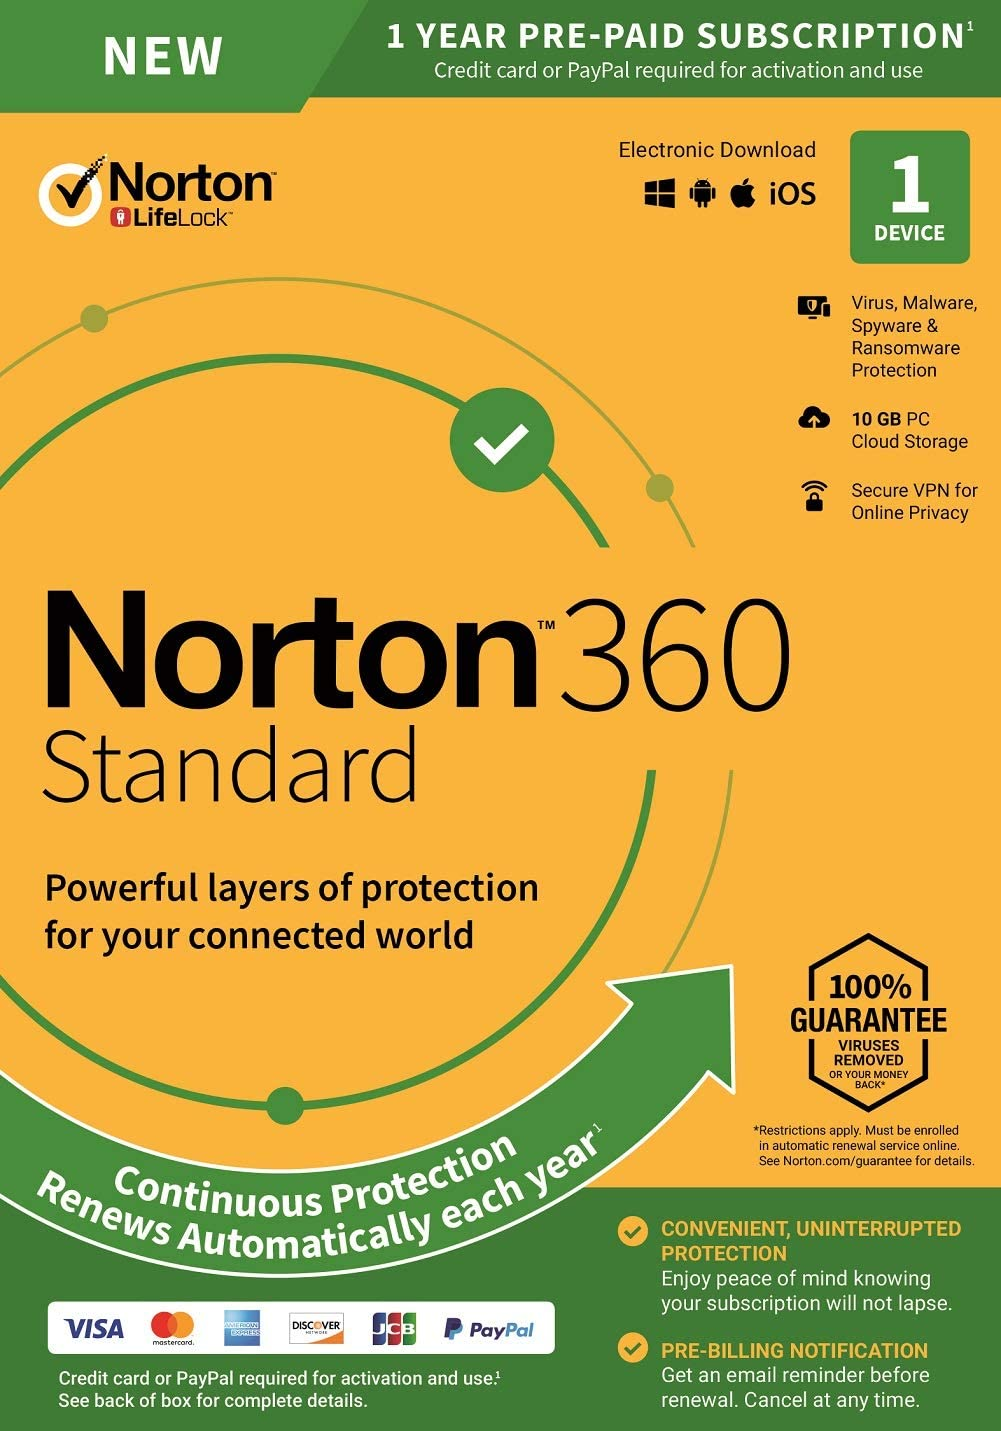 Norton 360 Standard – Antivirus Software for 1 Device with Auto Renewal – Includes VPN, PC Cloud Backup & Dark Web Monitoring powered by LifeLock - 2020 Ready [Key Card] 71BHCHAEQZL